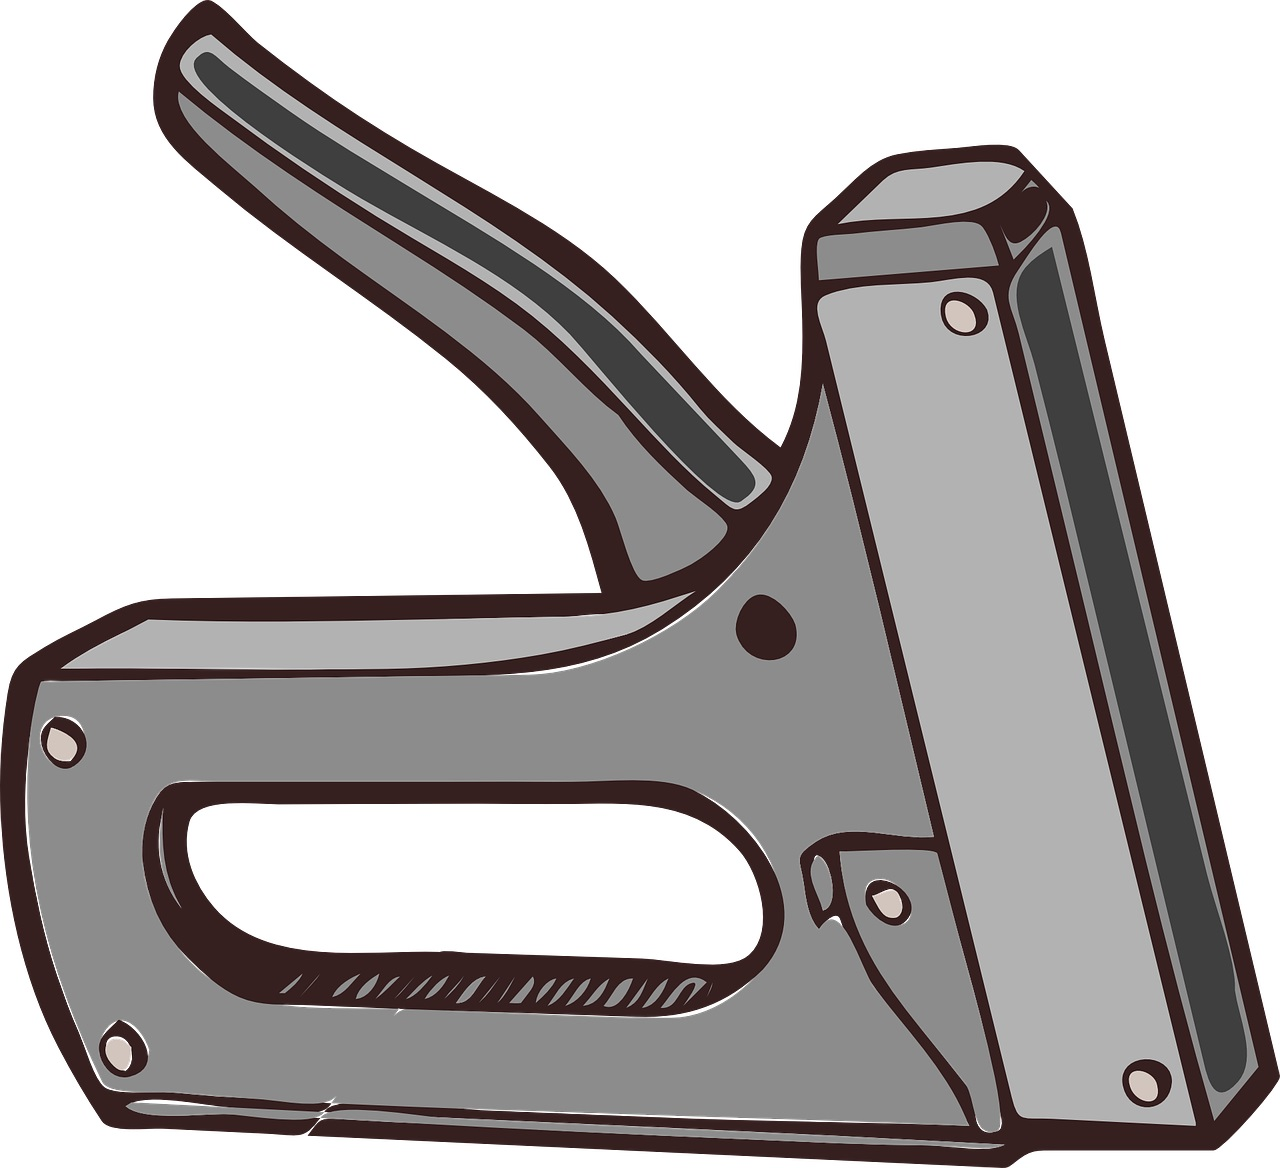 Staple Gun Reference Tool